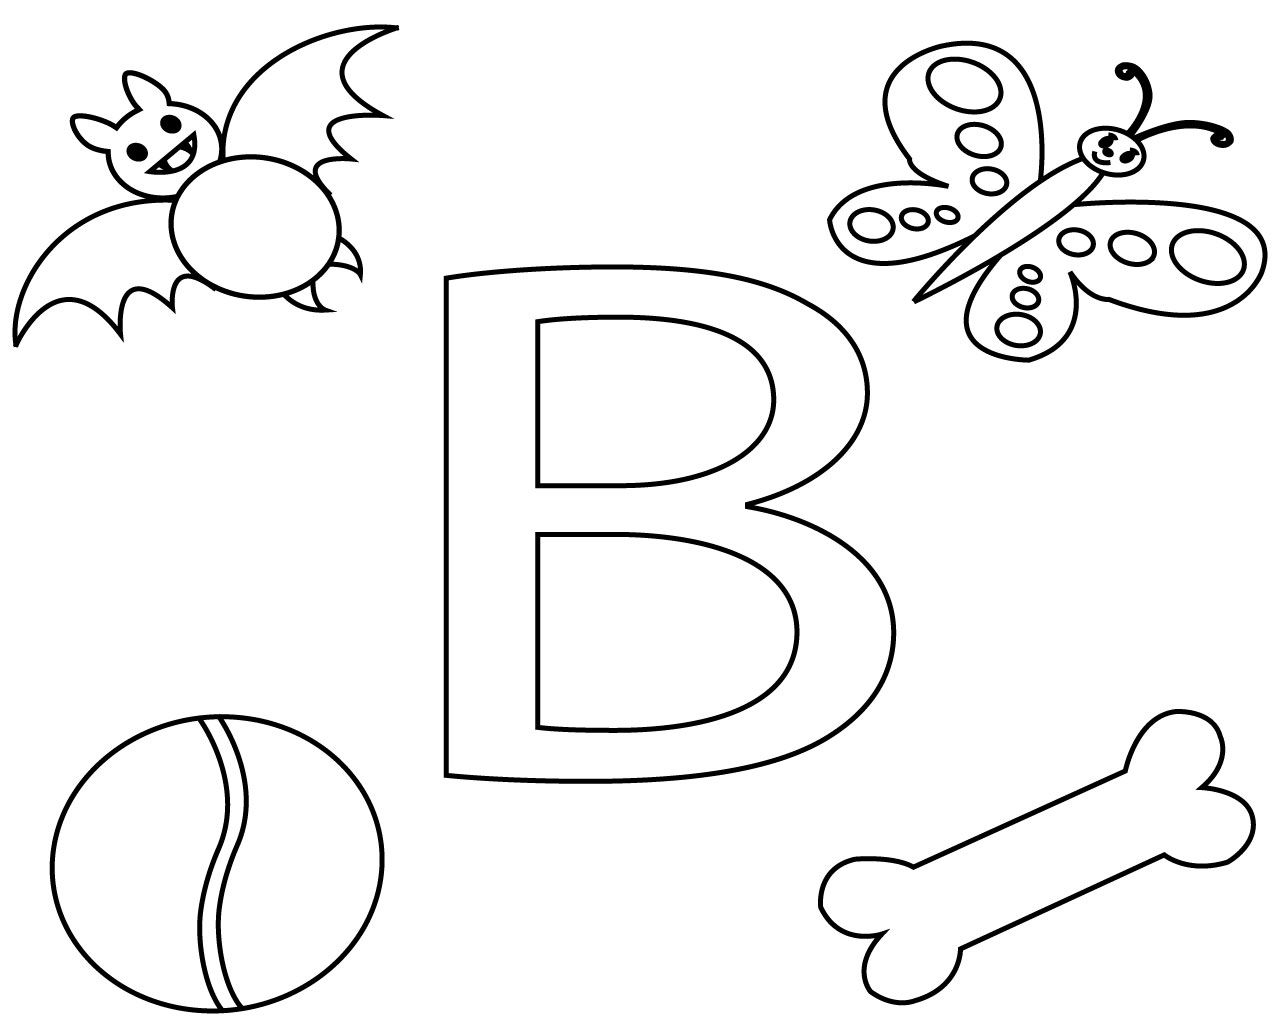 Letter B Coloring Pages Letter B Coloring Pages Printable Letters Coloring Pages